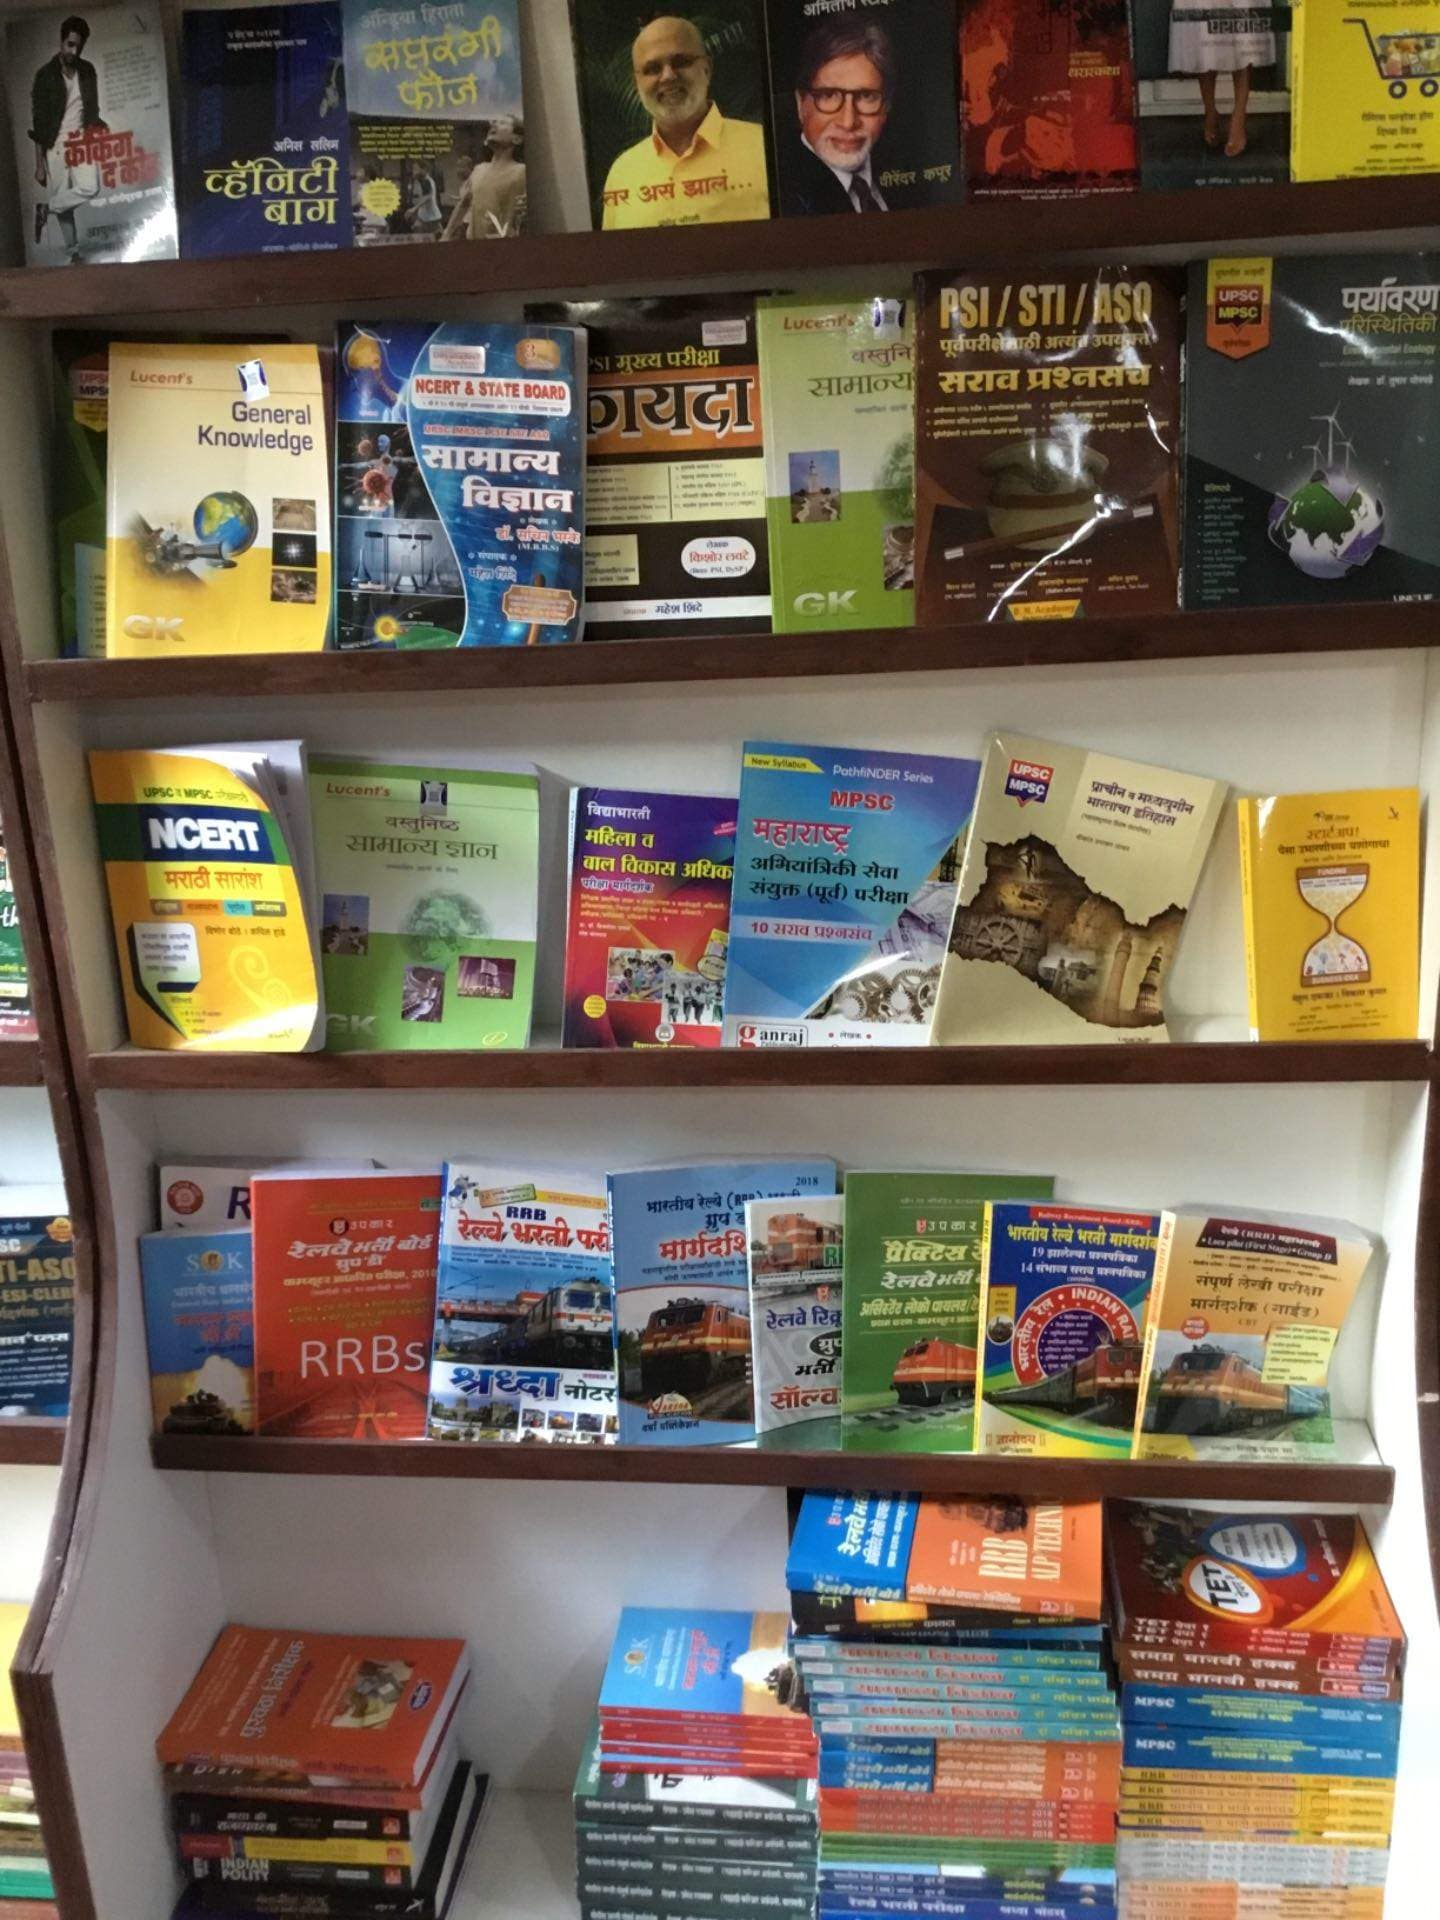 Top Ncert Books in Sangli - Justdial